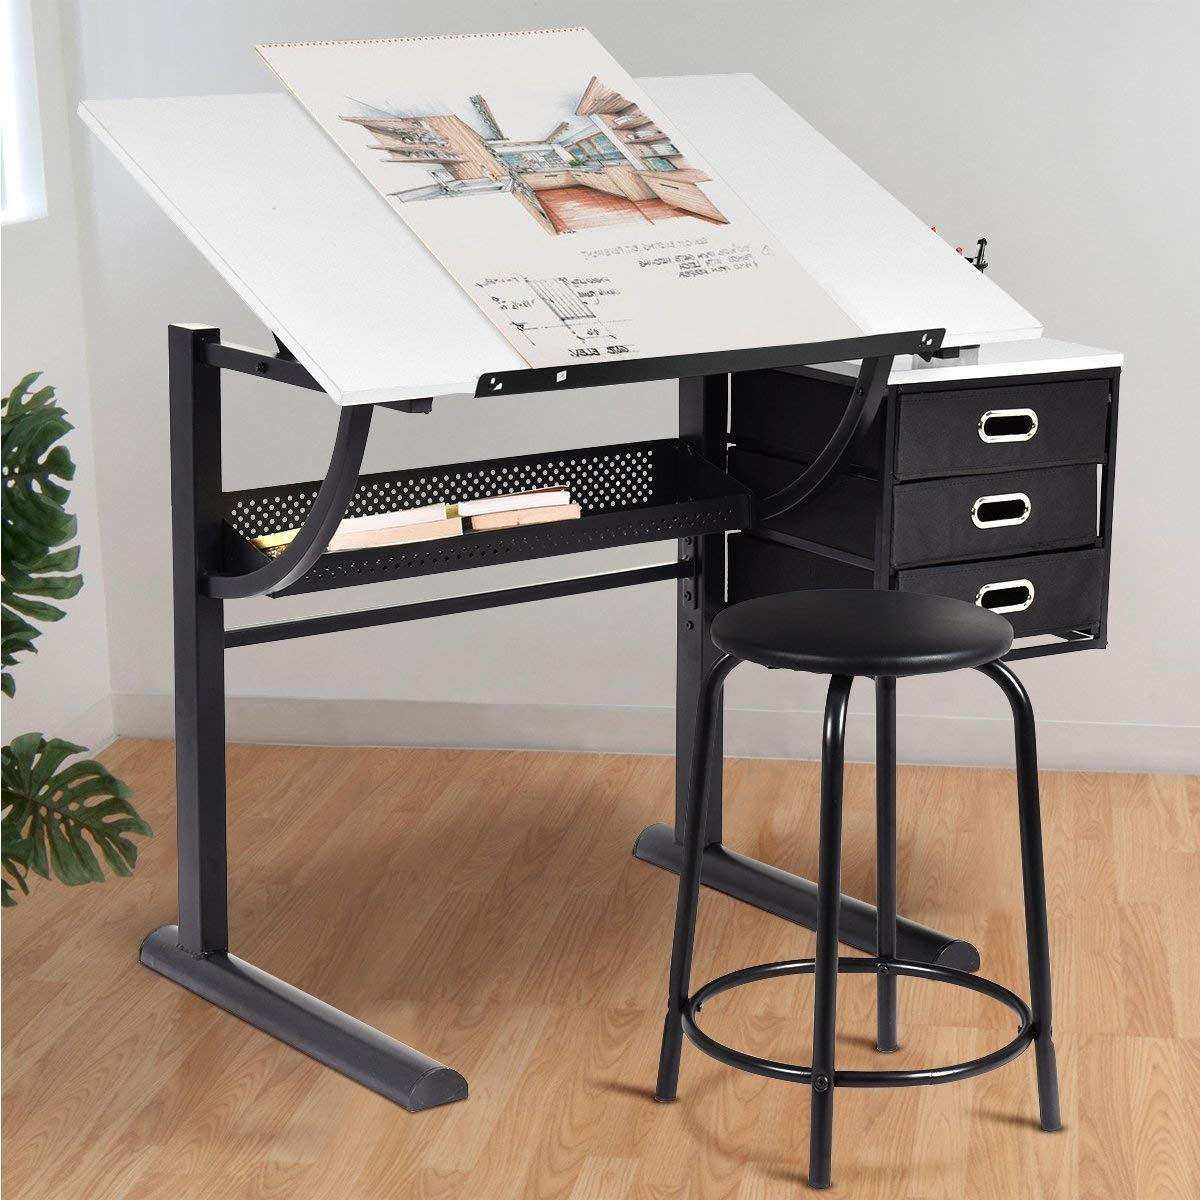 Top 10 Best Center Table for Drawing Room in 2020 - The ...